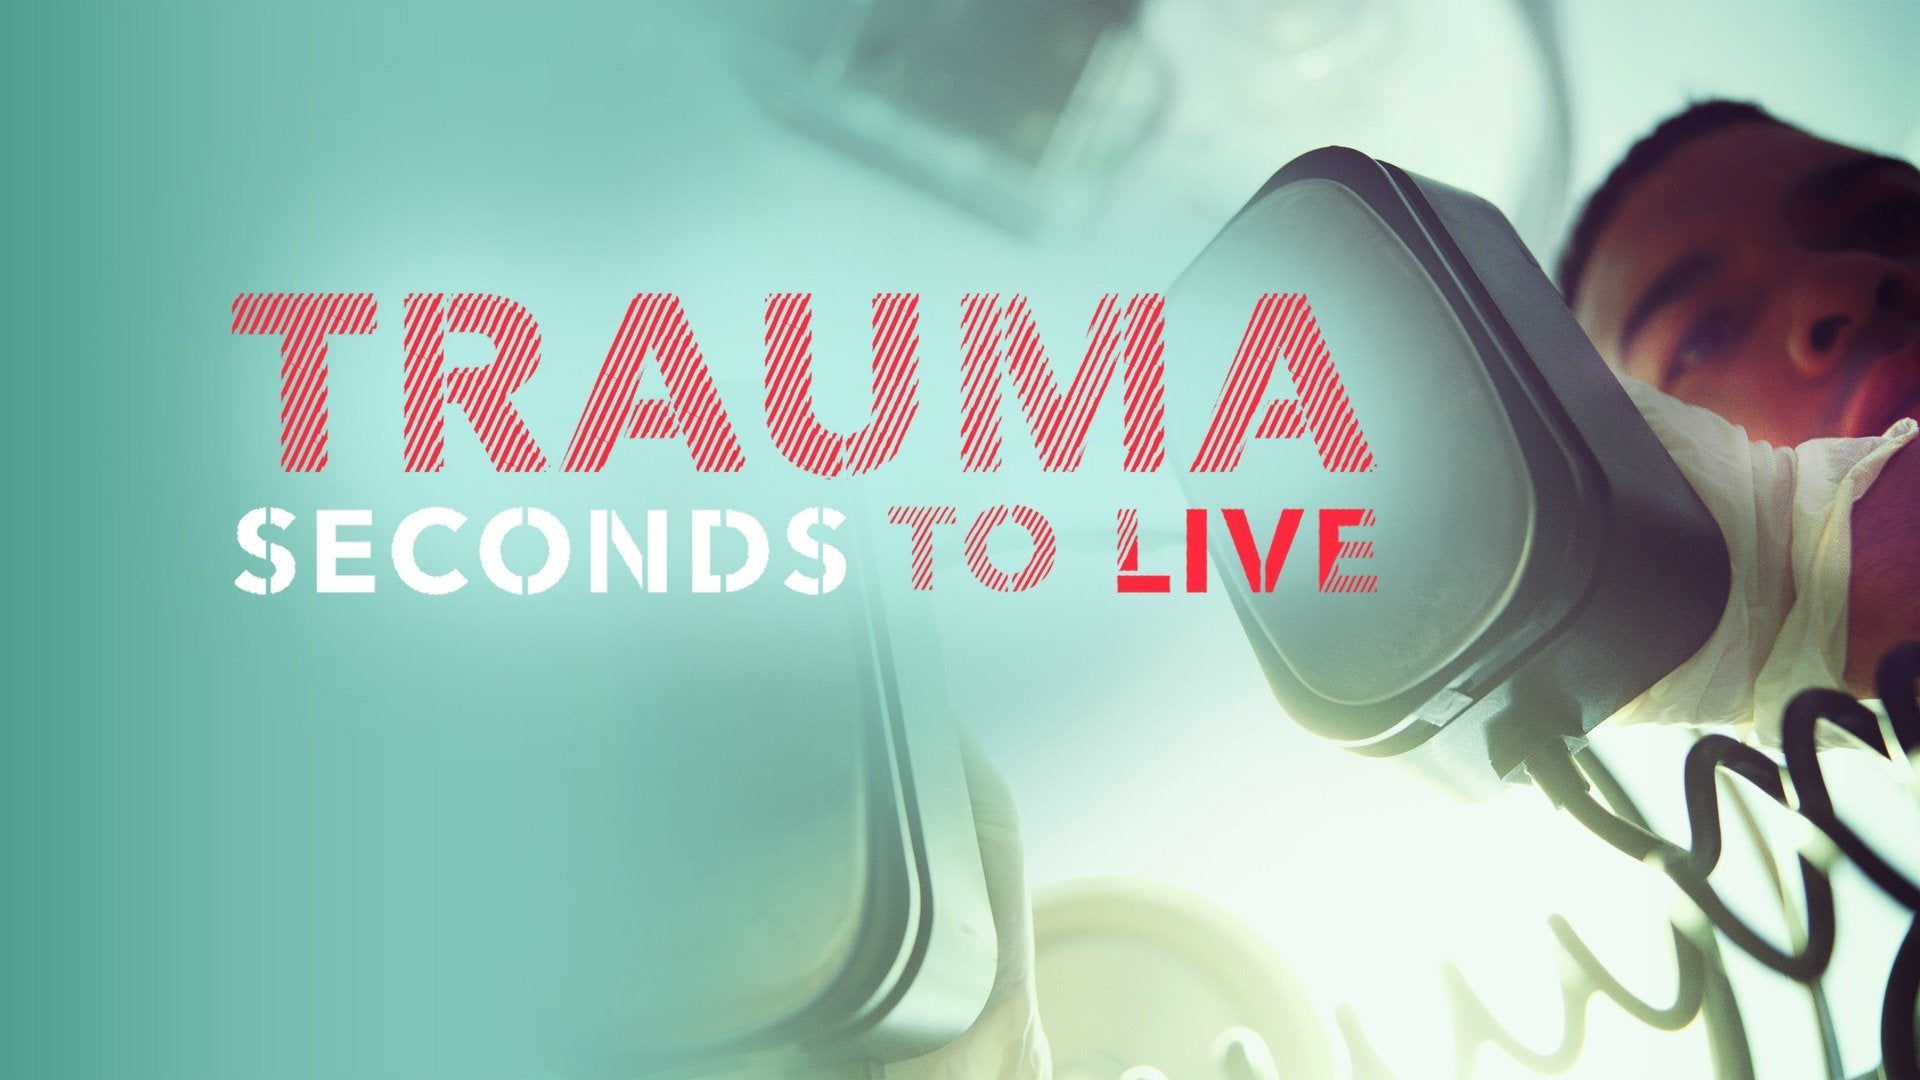 Trauma: Seconds to Live